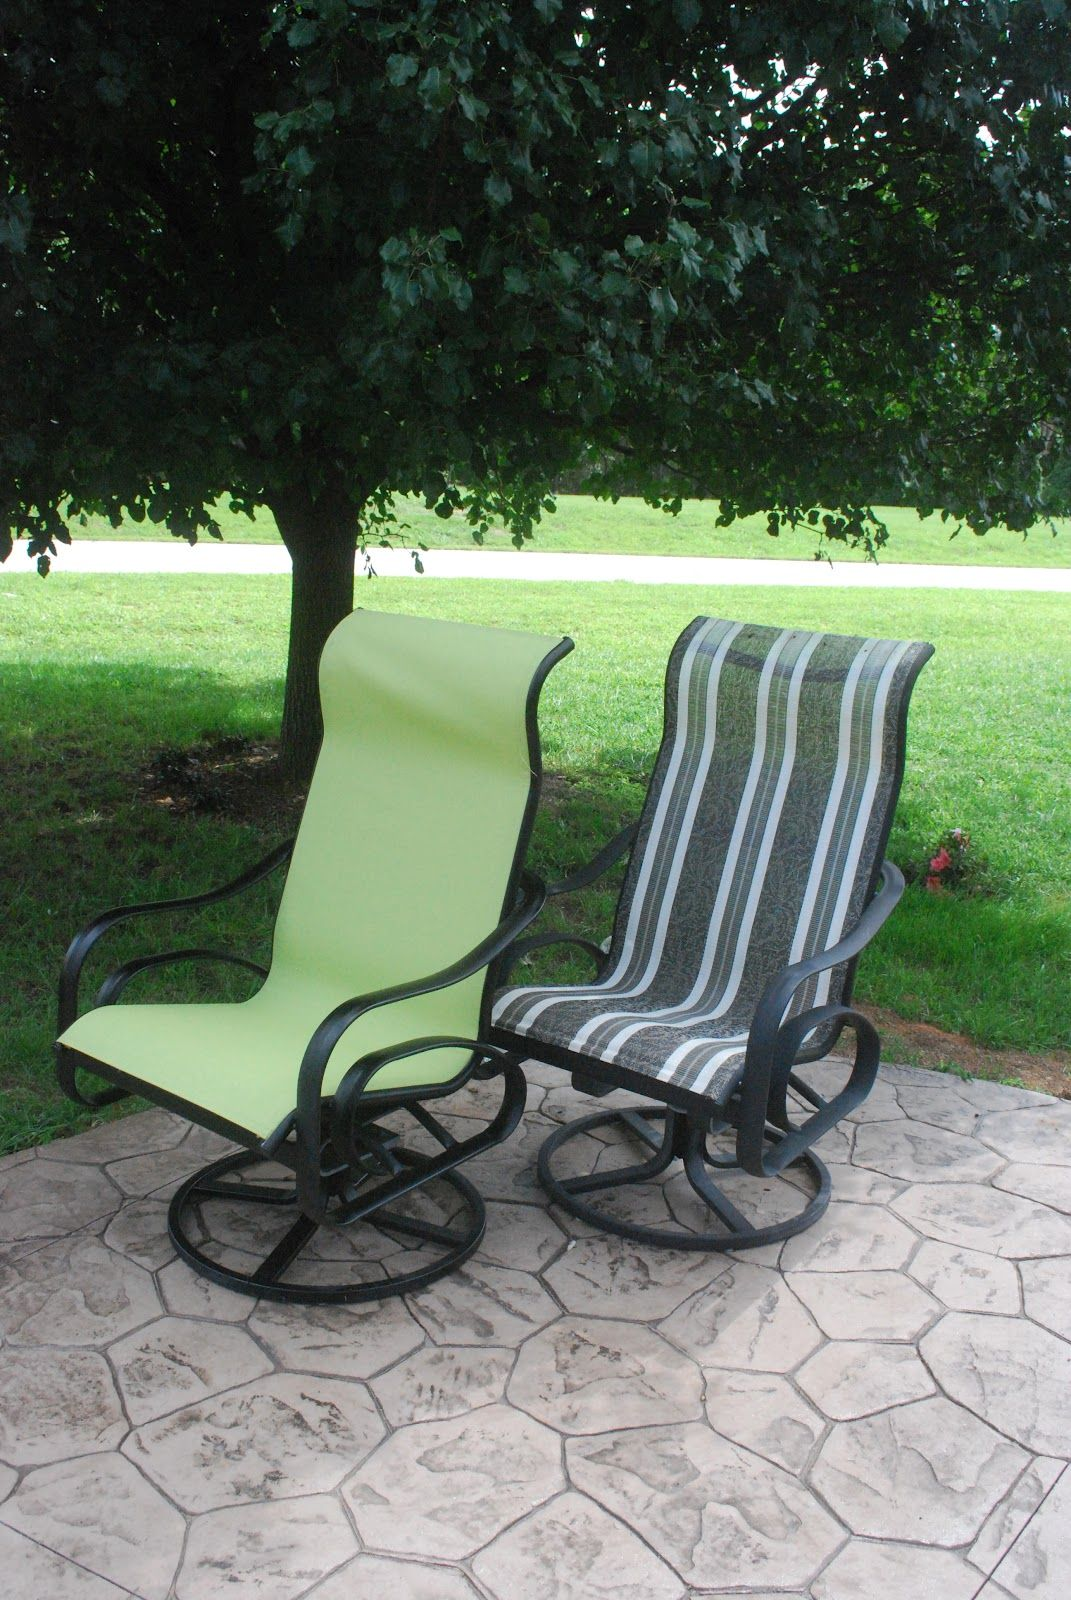 I Recovered Sling Back Chairs That Were Given To Me Easy Got Phifertex Plus Vinyl Mesh Fabric From Sail Rite About 16